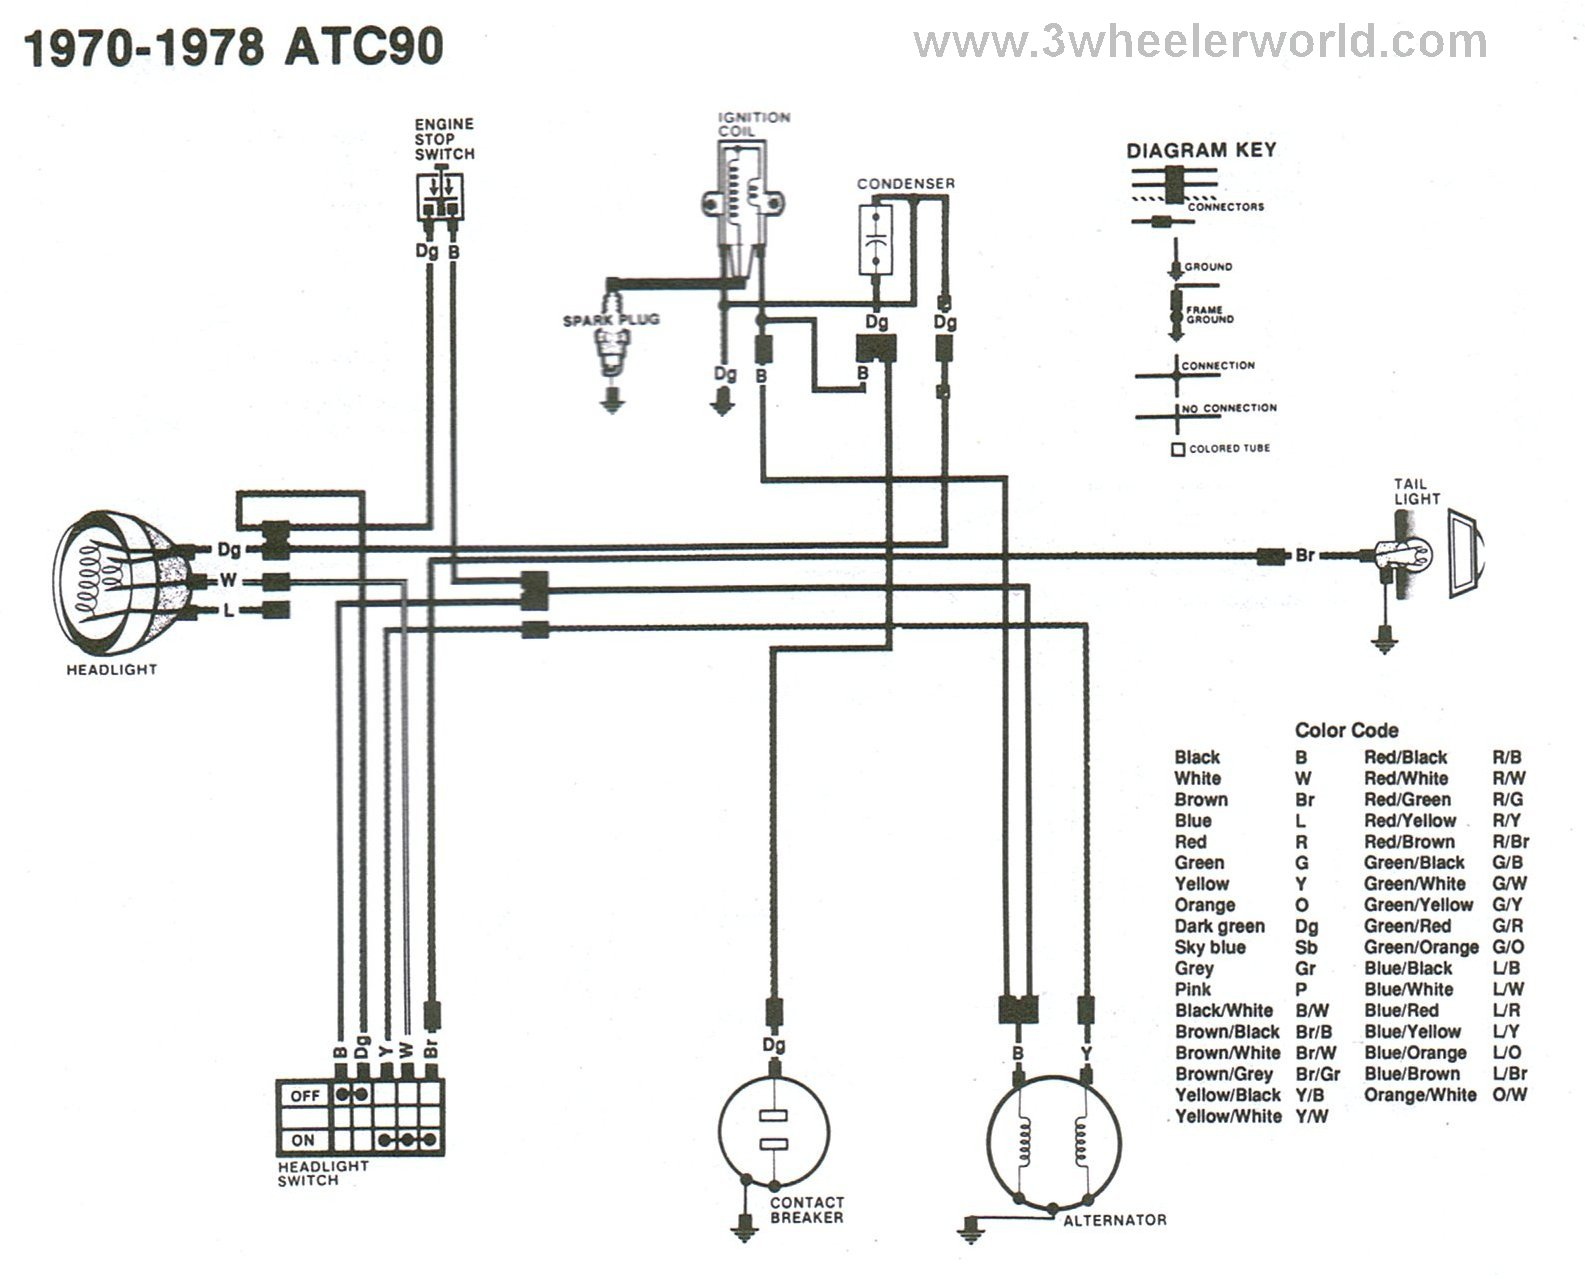 ATC90x70Thru78 3 wheeler world tech help honda wiring diagrams honda c70 wiring diagram at honlapkeszites.co